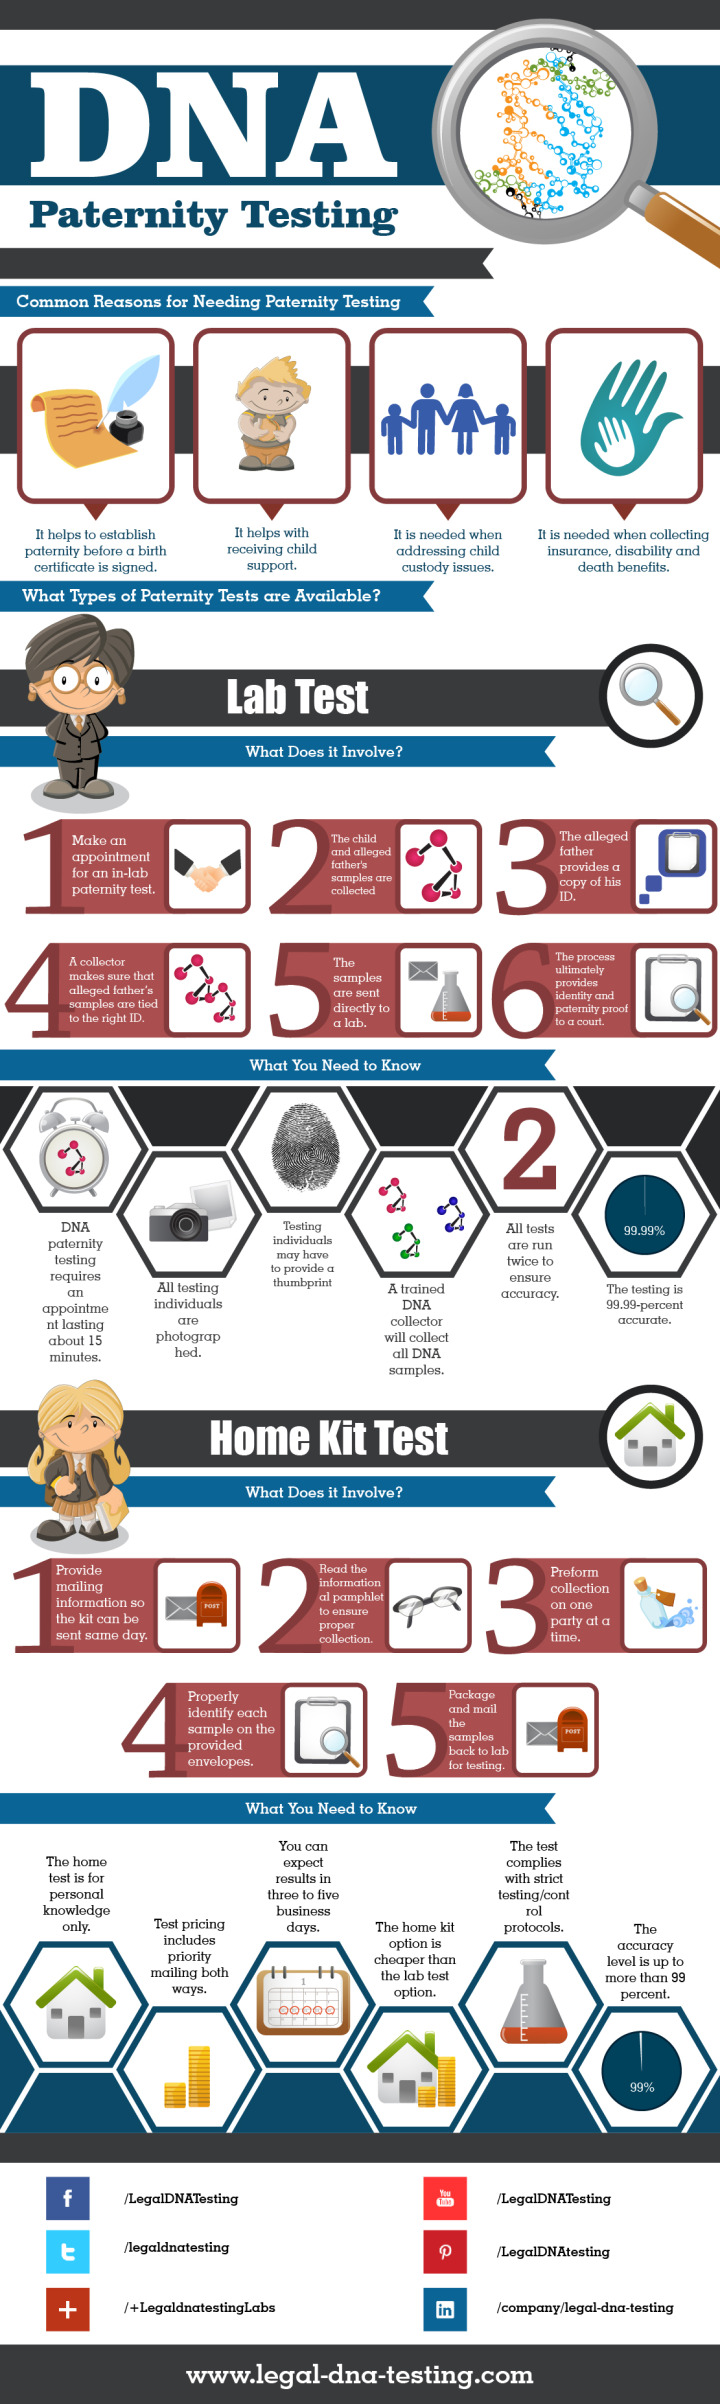 Paternity Testing Infographic